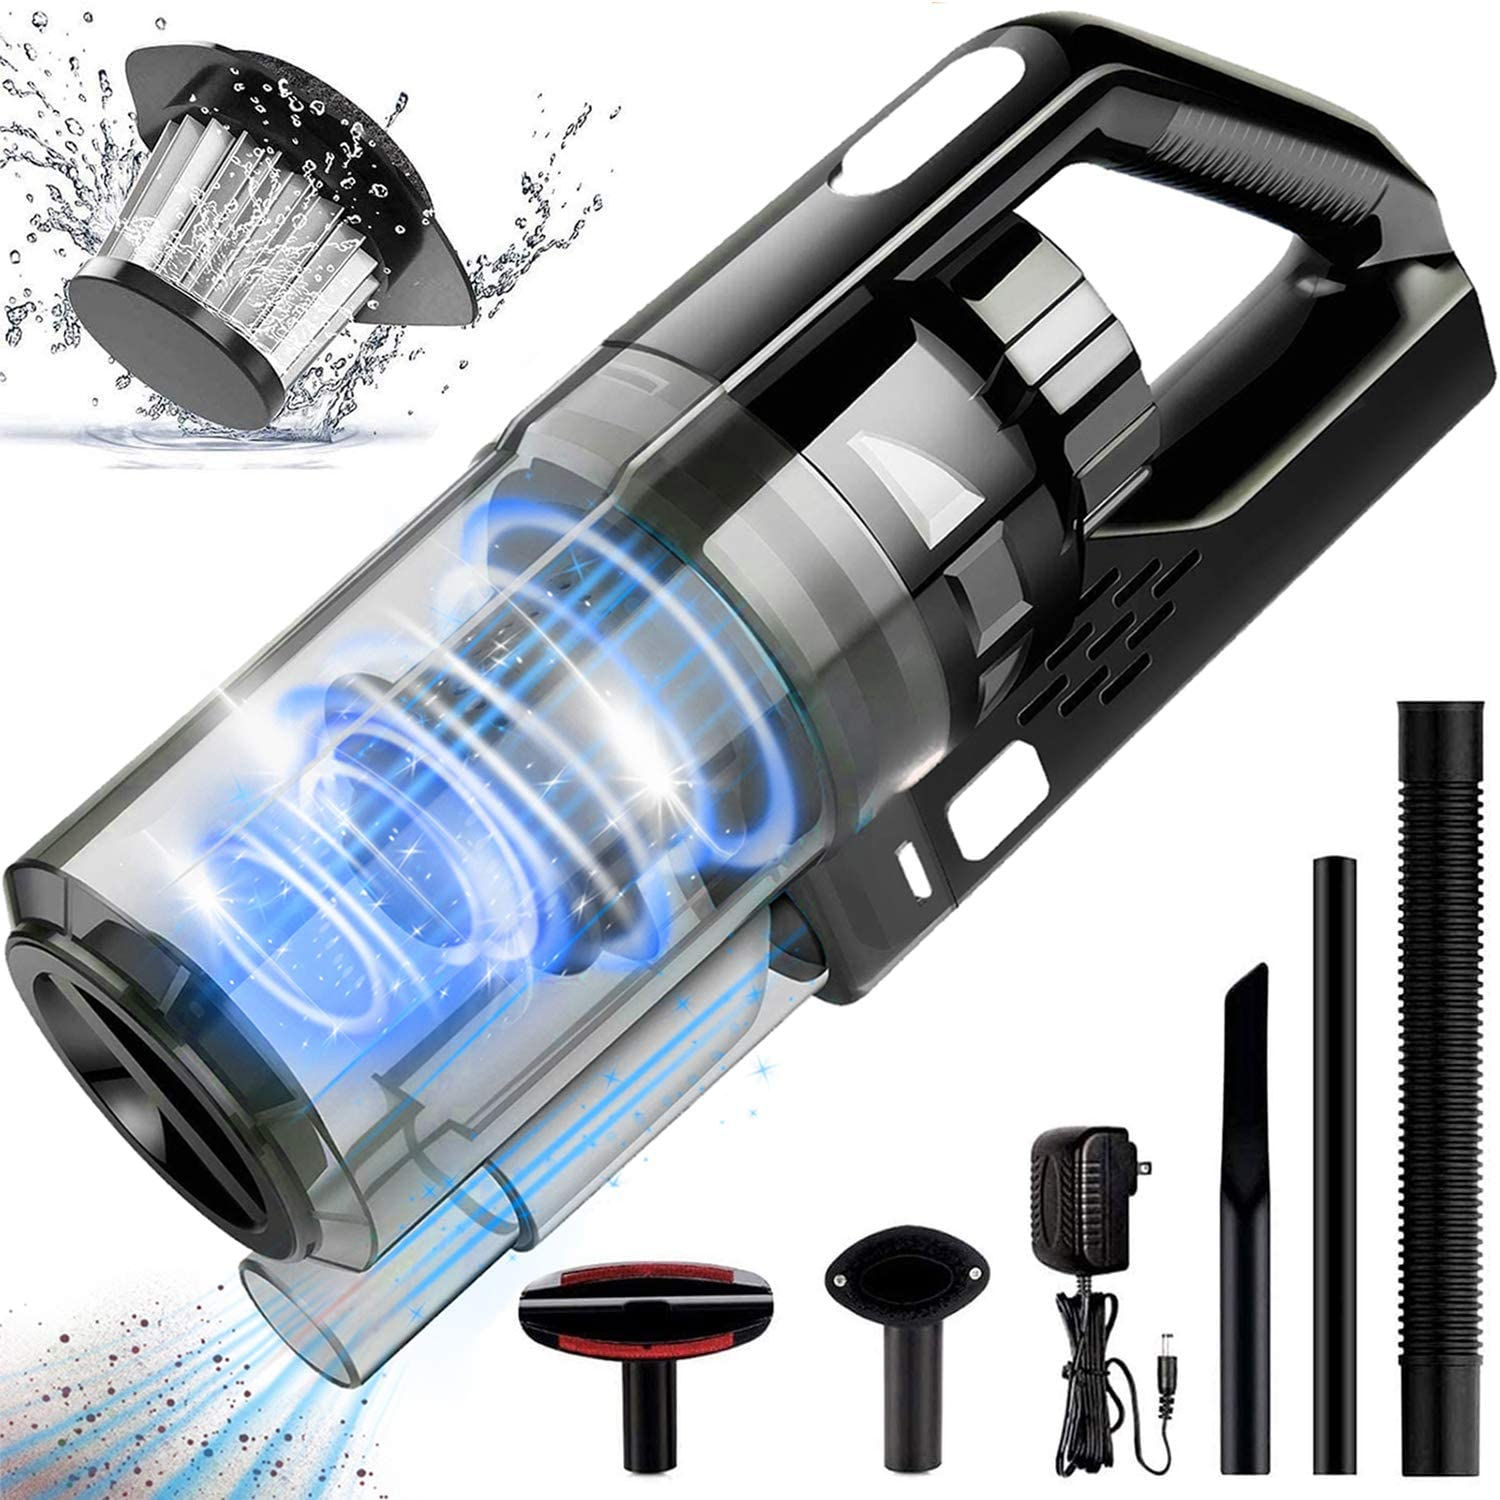 Hwook Portable Handheld Vacuum Cleaner - 8KPA Rechargeable Cordless Vacuum Handheld with Wet/Dry Powerful Cyclonic Suction Lightweight Quick Charge Vacuum Cleaner,for Home and Car Cleaning,Black&Grey